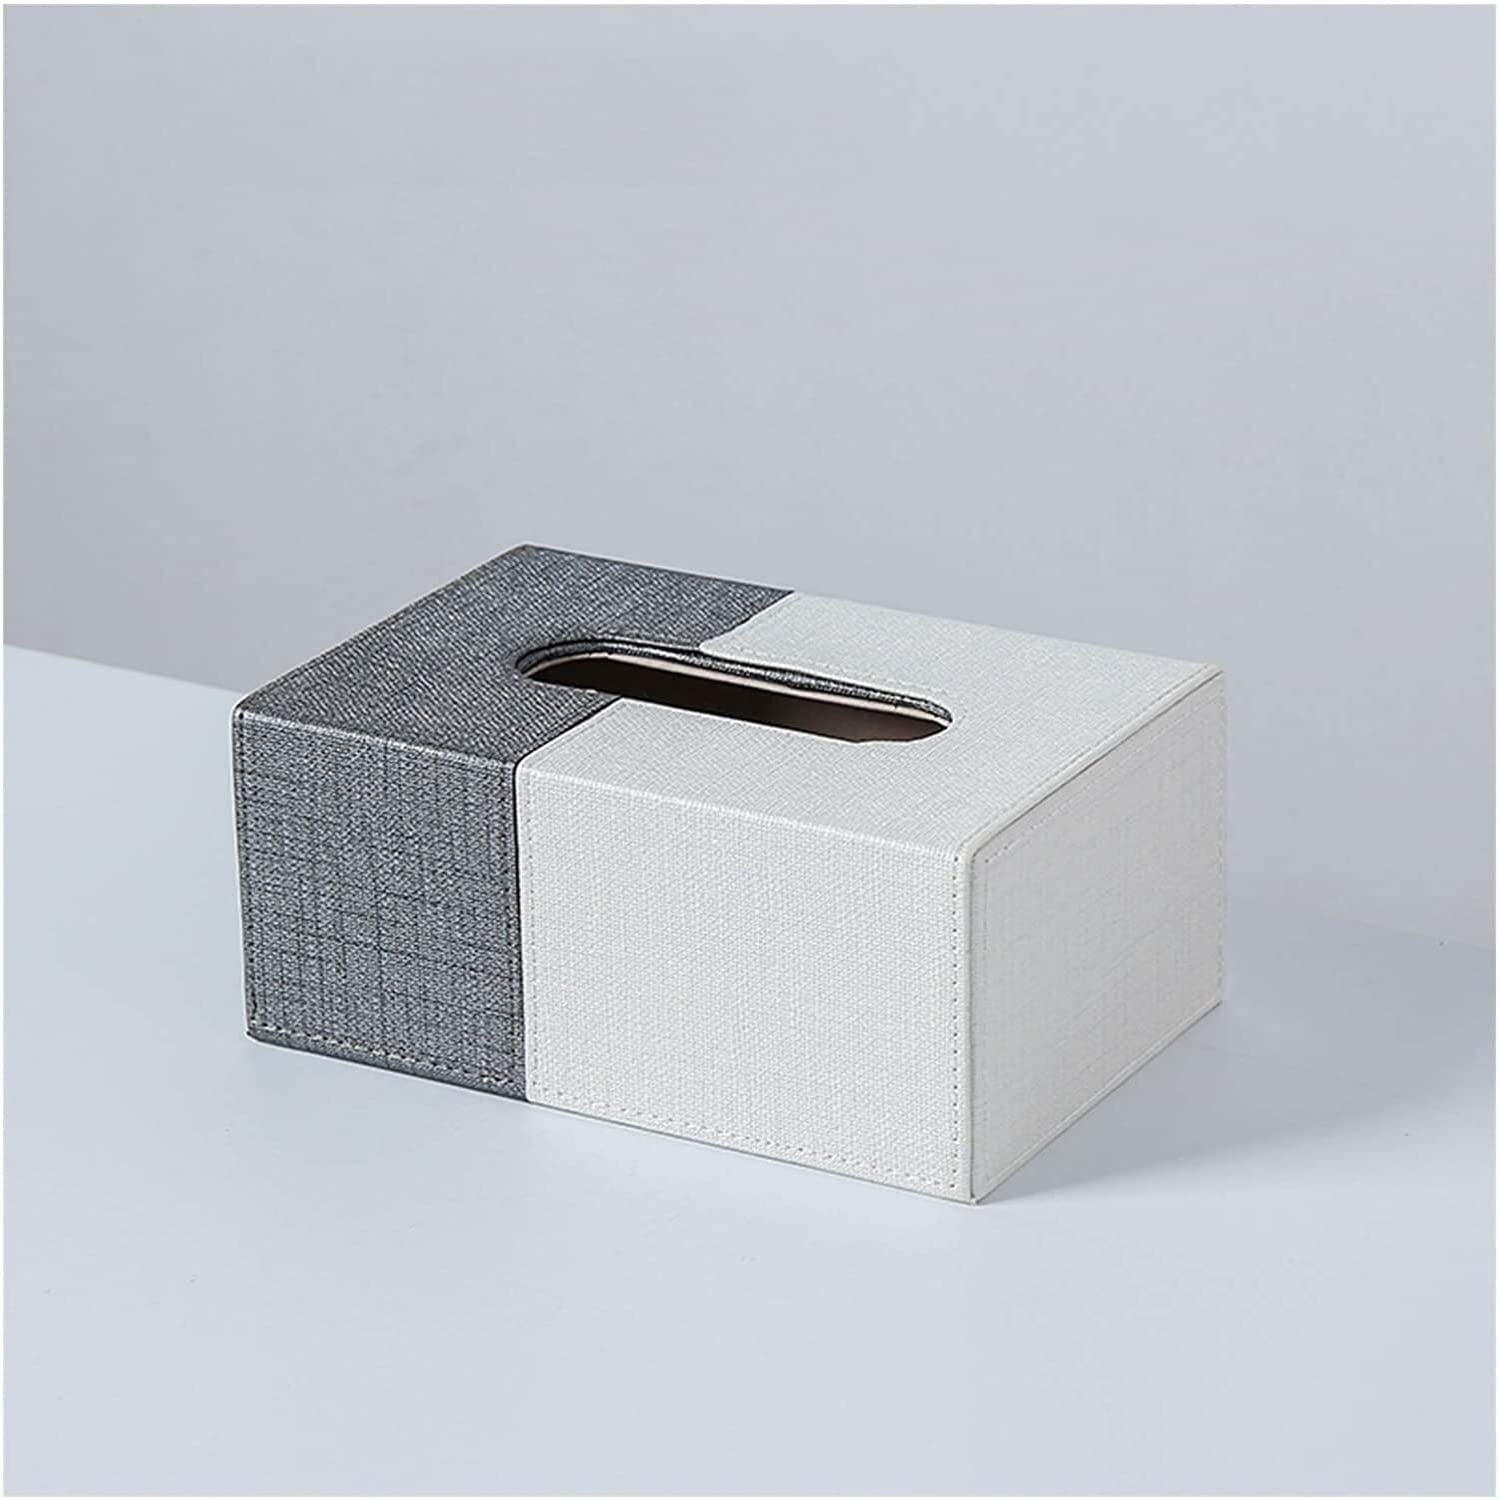 Multifunctional Max 89% OFF Tissue Box Direct store Cover Holder Tis Organizer